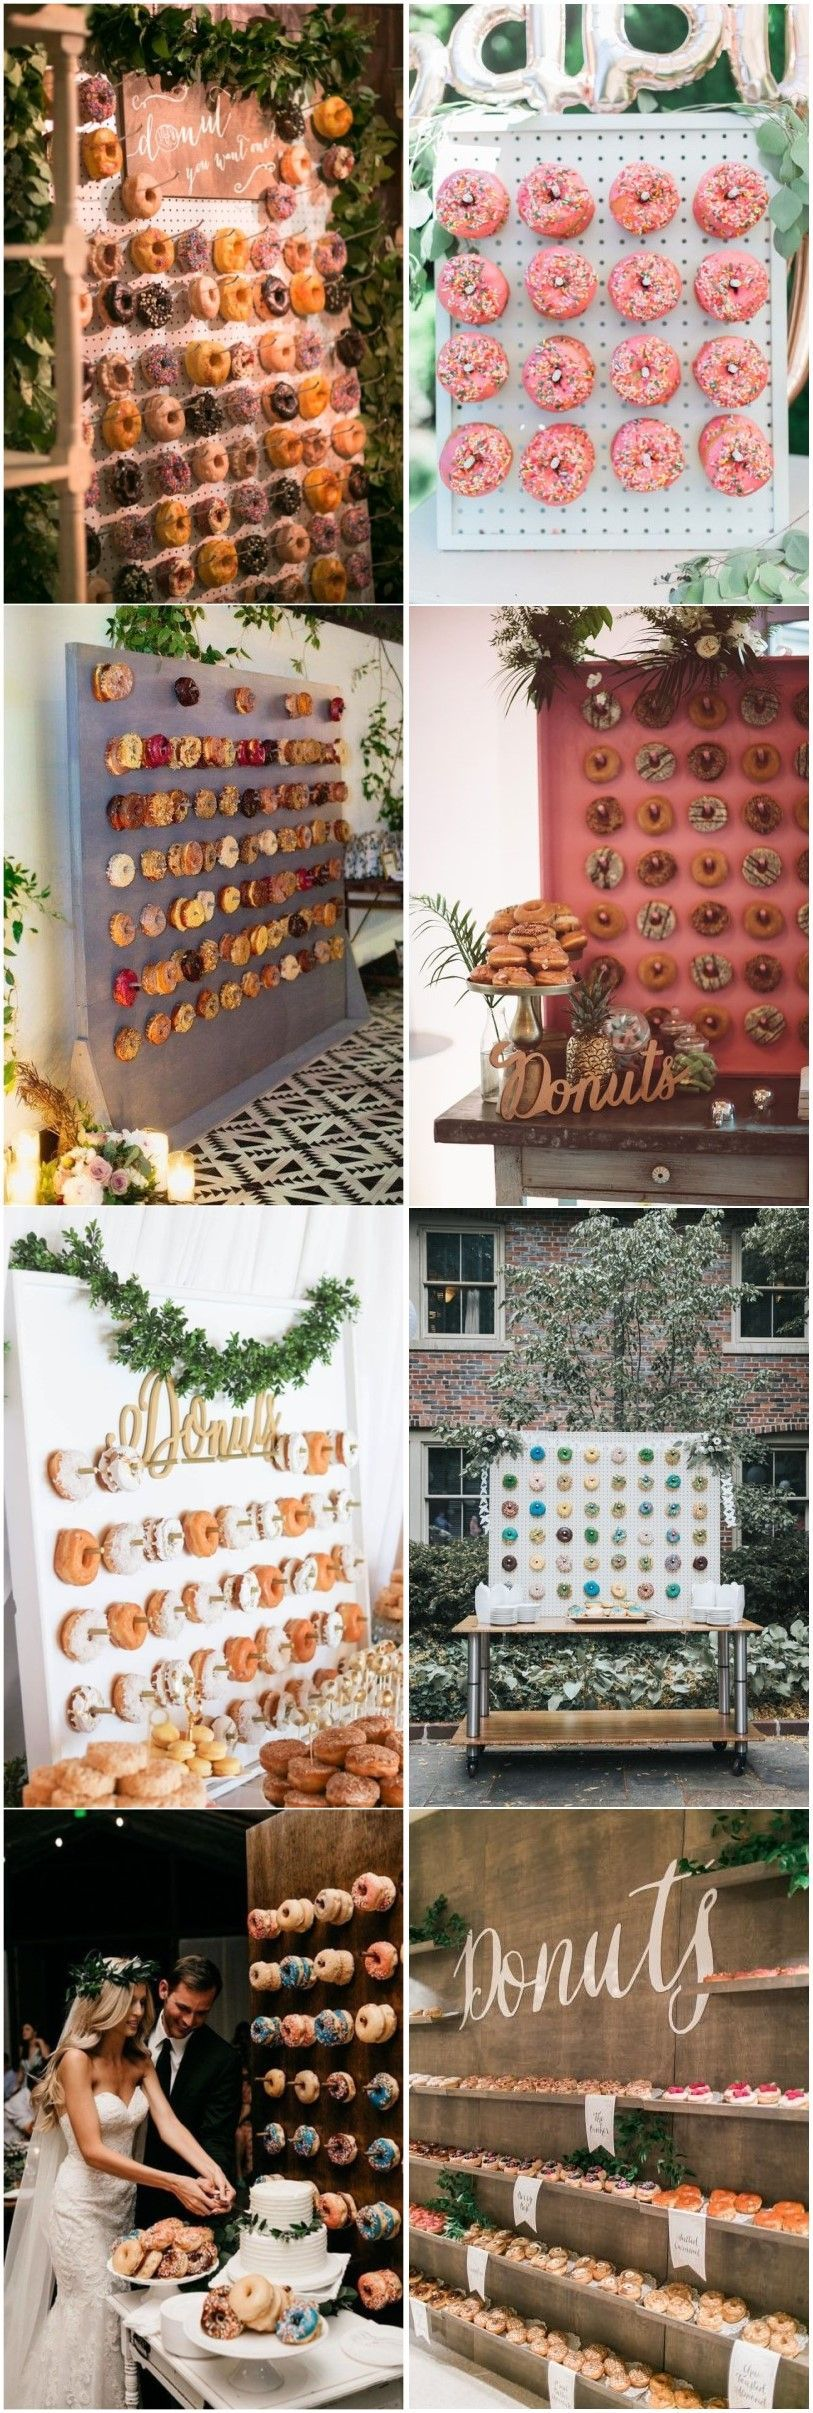 Wedding room decoration ideas 2018  Latest Catering Trend of  Mouthwatering Donut Wedding Walls